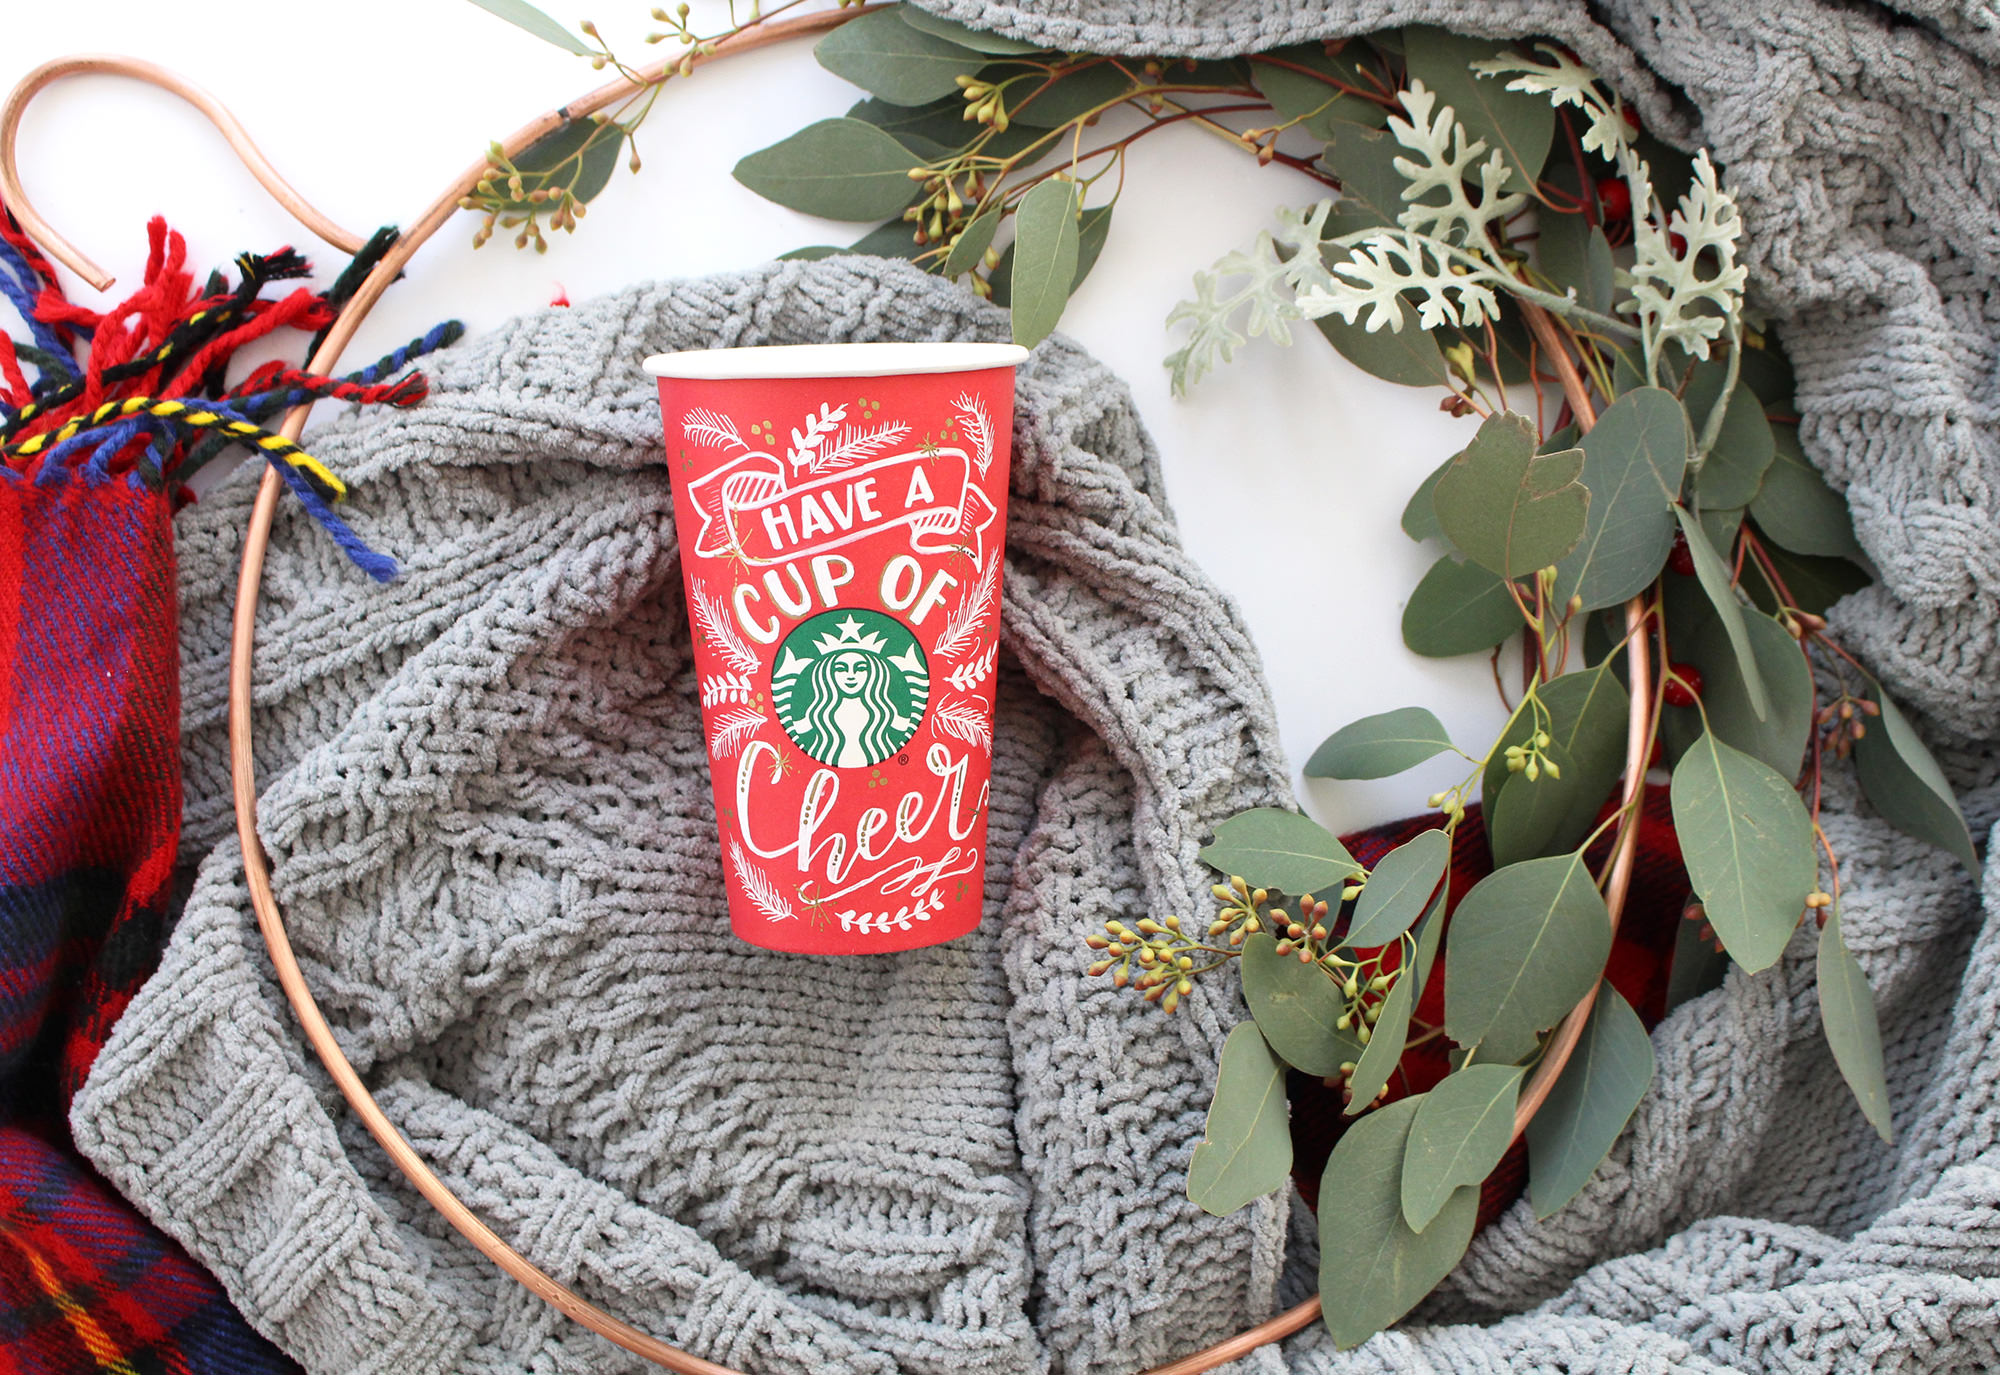 Starbucks Red Cup Art by Valerie McKeehan of Lily & Val. Have a cup of cheer!